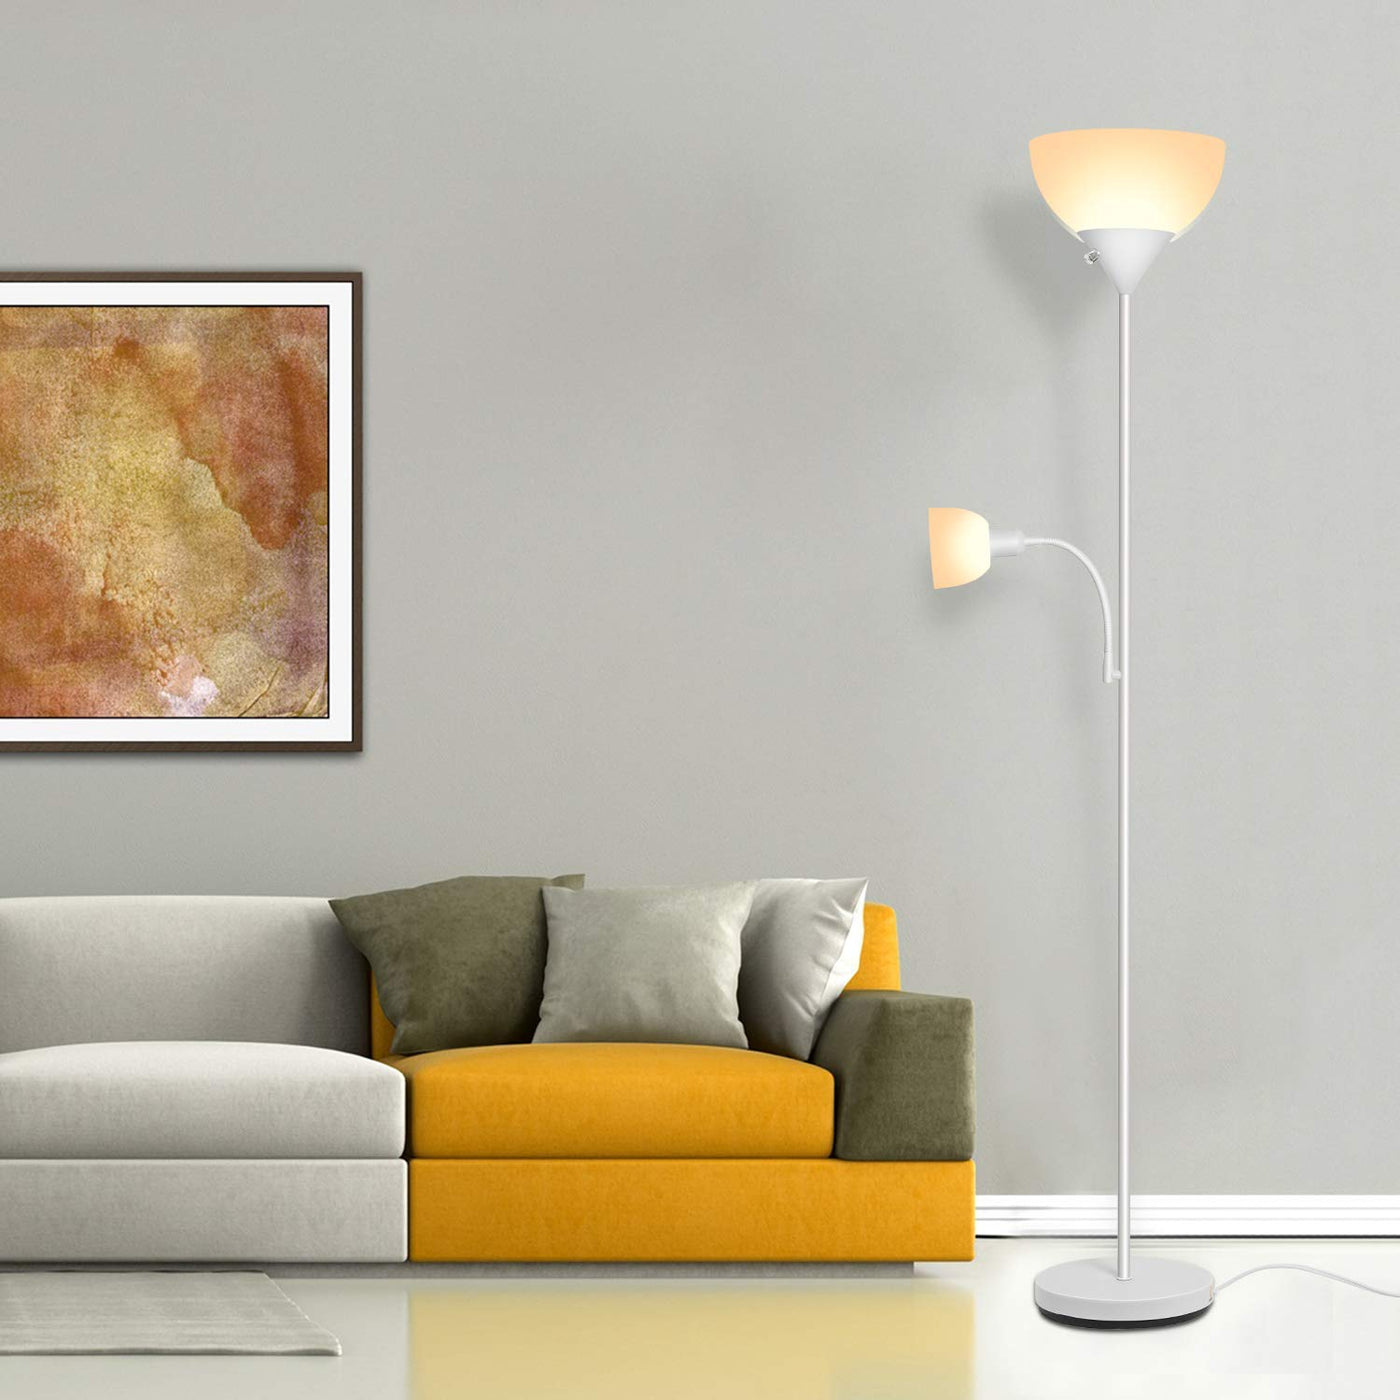 SUNLLIPE LED Torchiere Floor Lamp 70.5 Inches Energy Saving